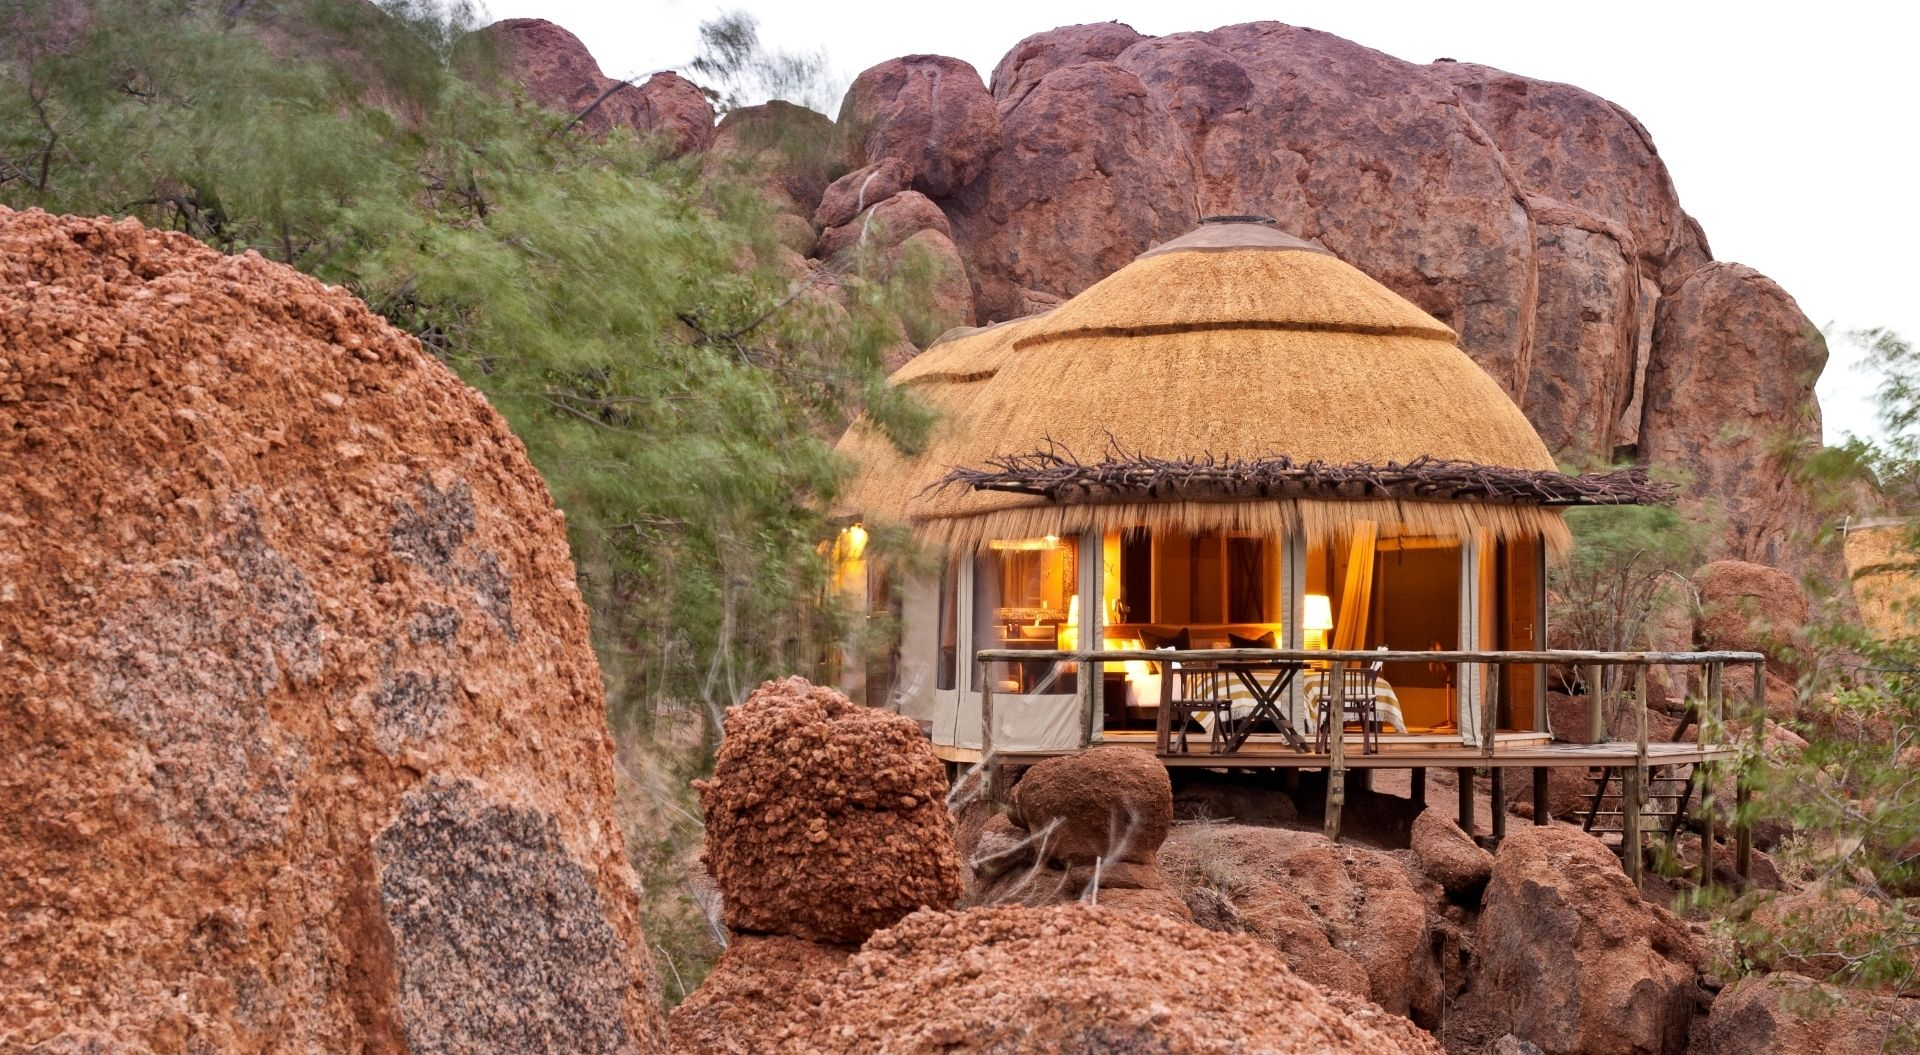 Thatched rooms are nestled amongst the boulders